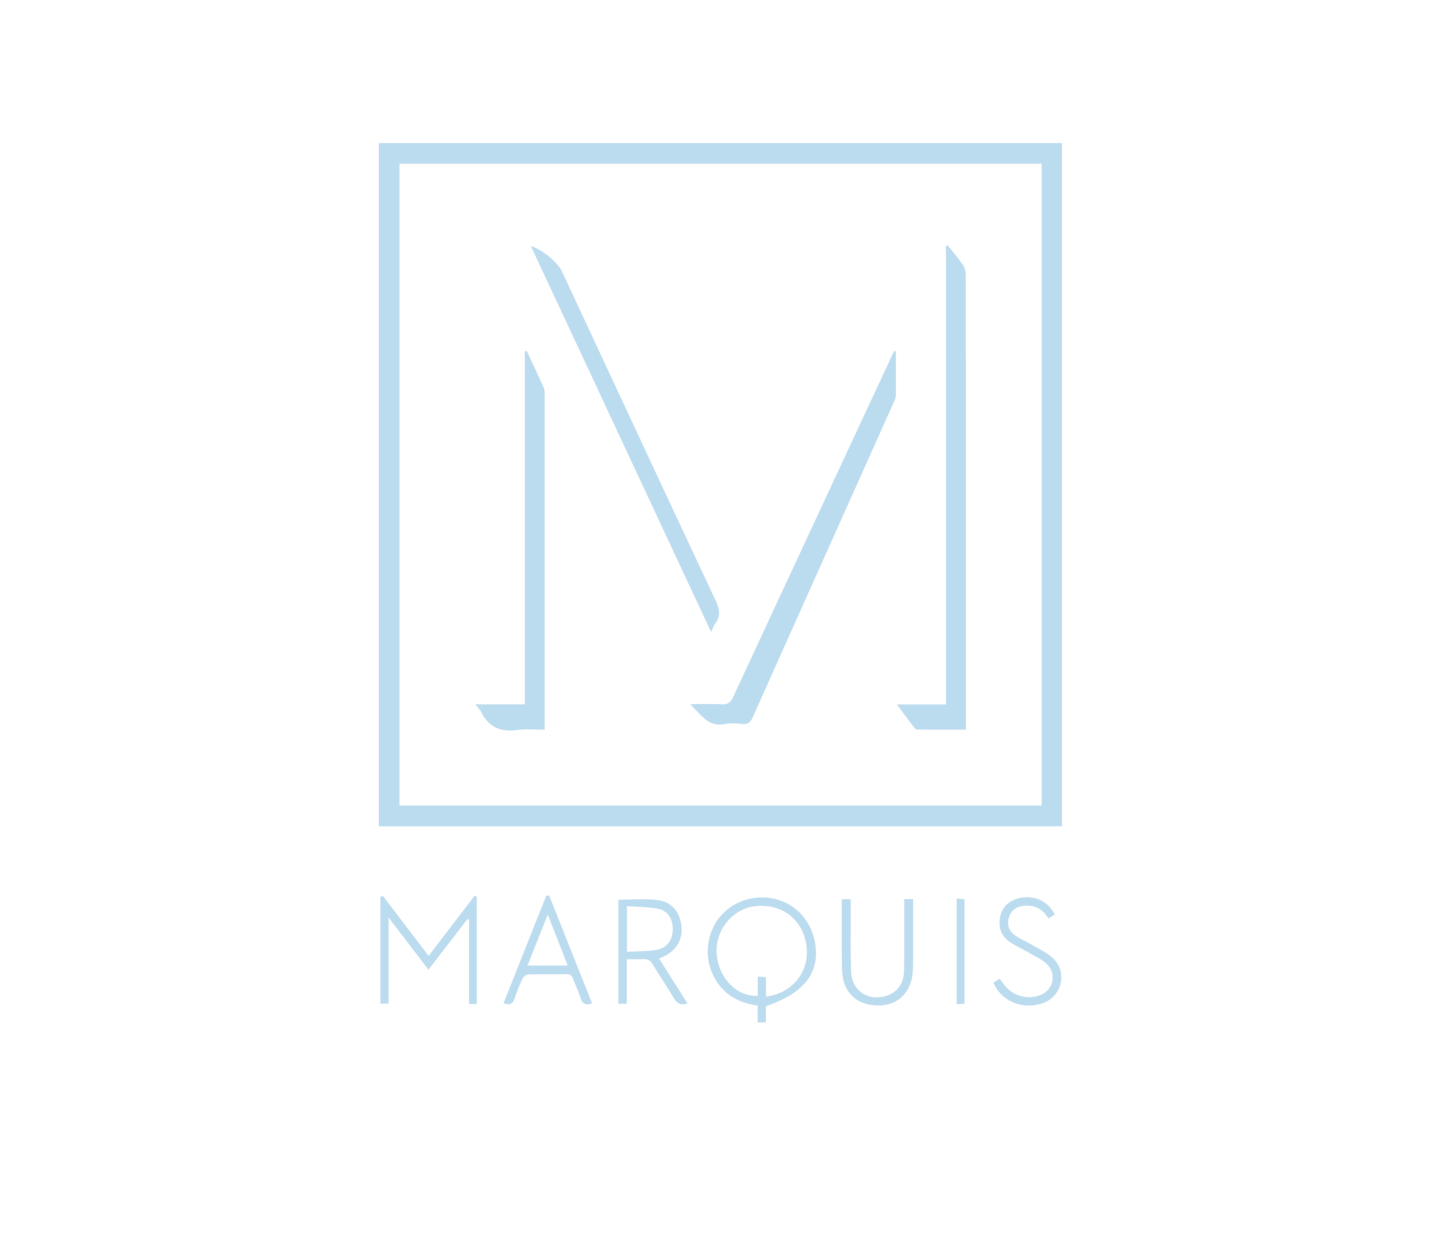 Marquis at Great Hills